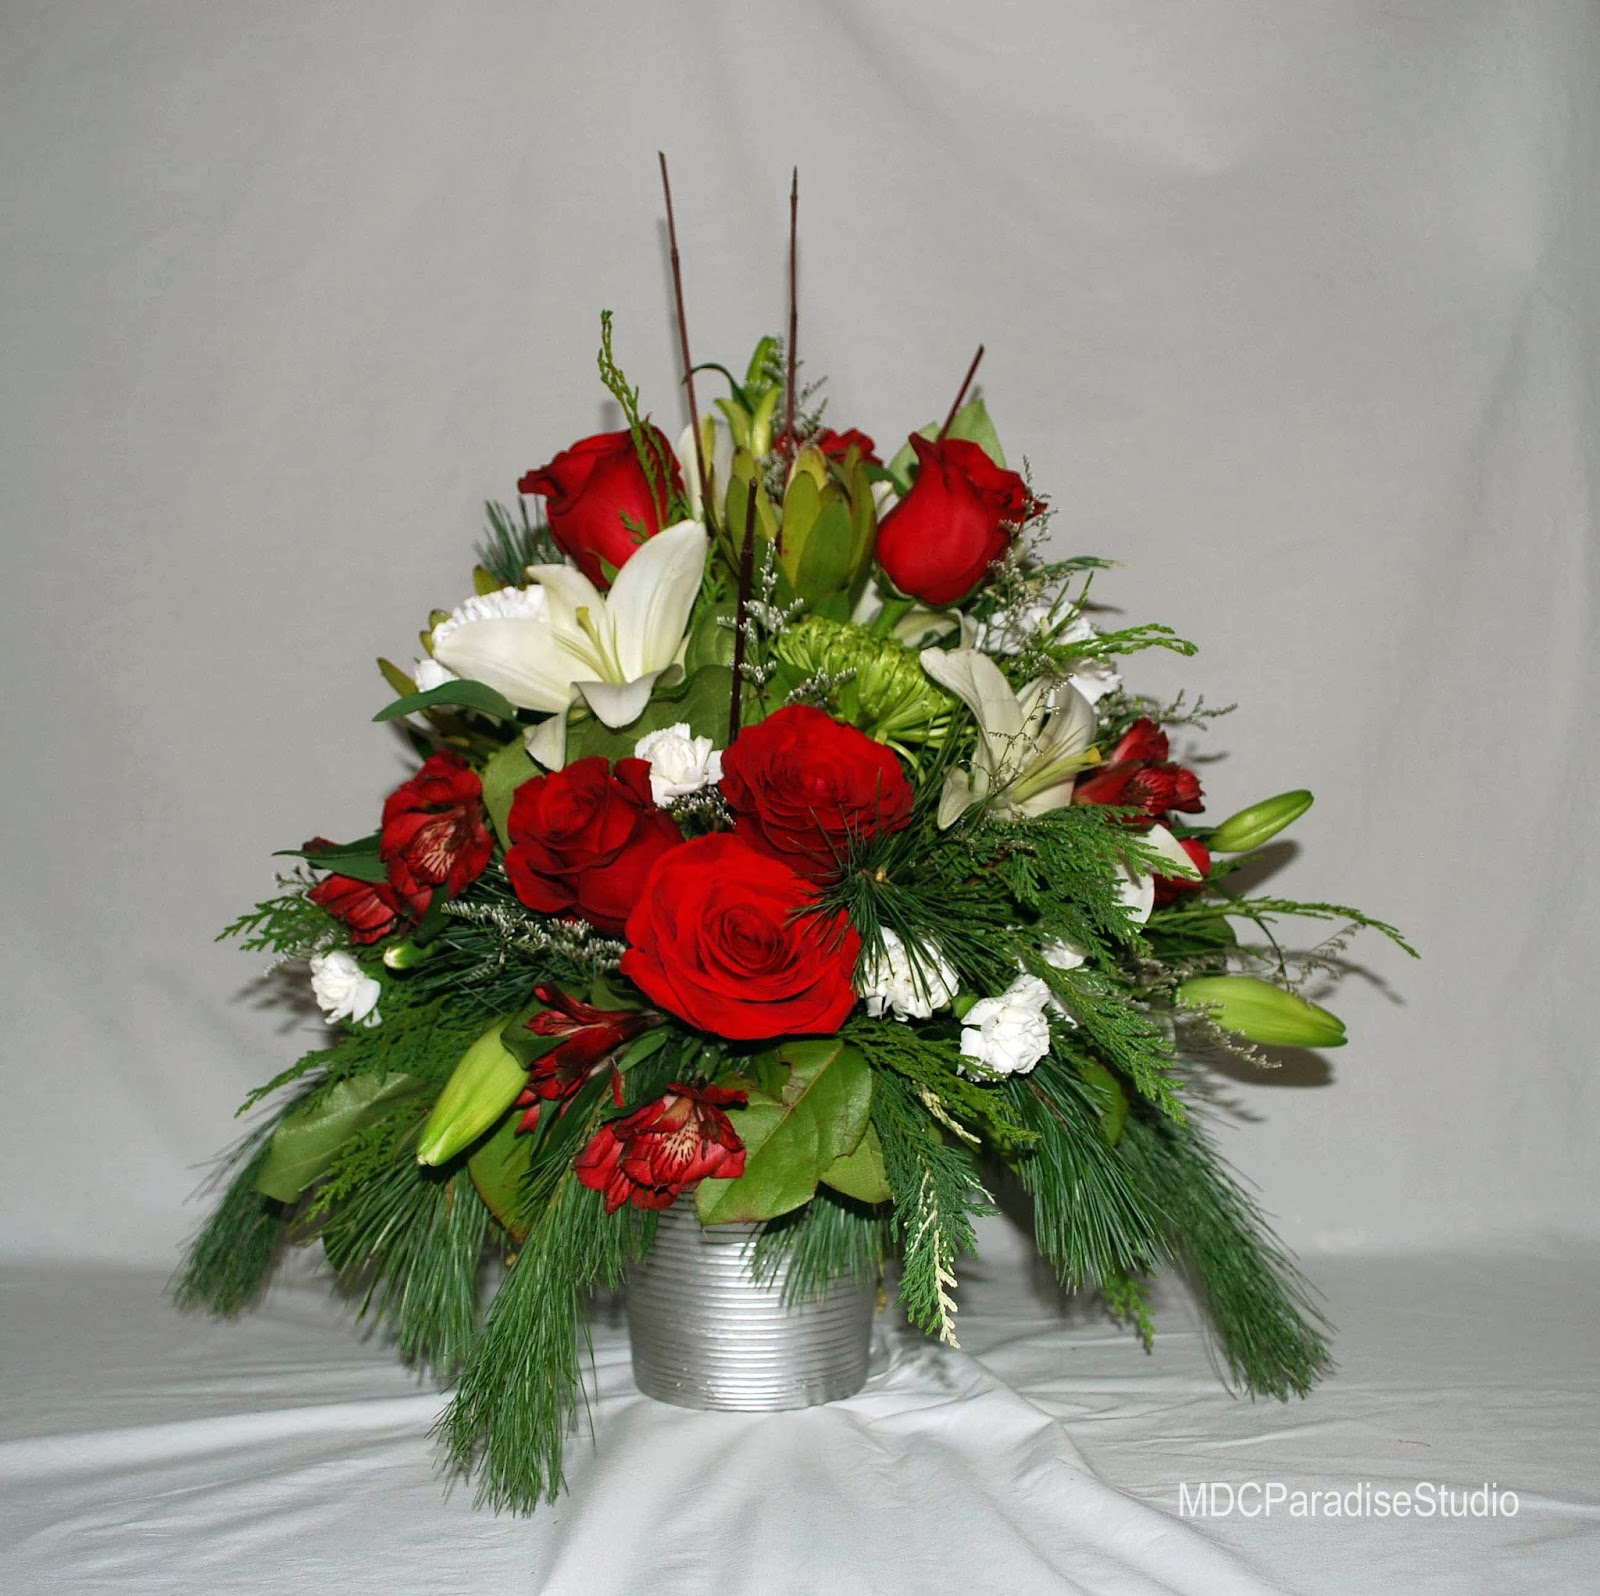 Paradise floral studio christmas flower arrangements for A arrangement florist flowers